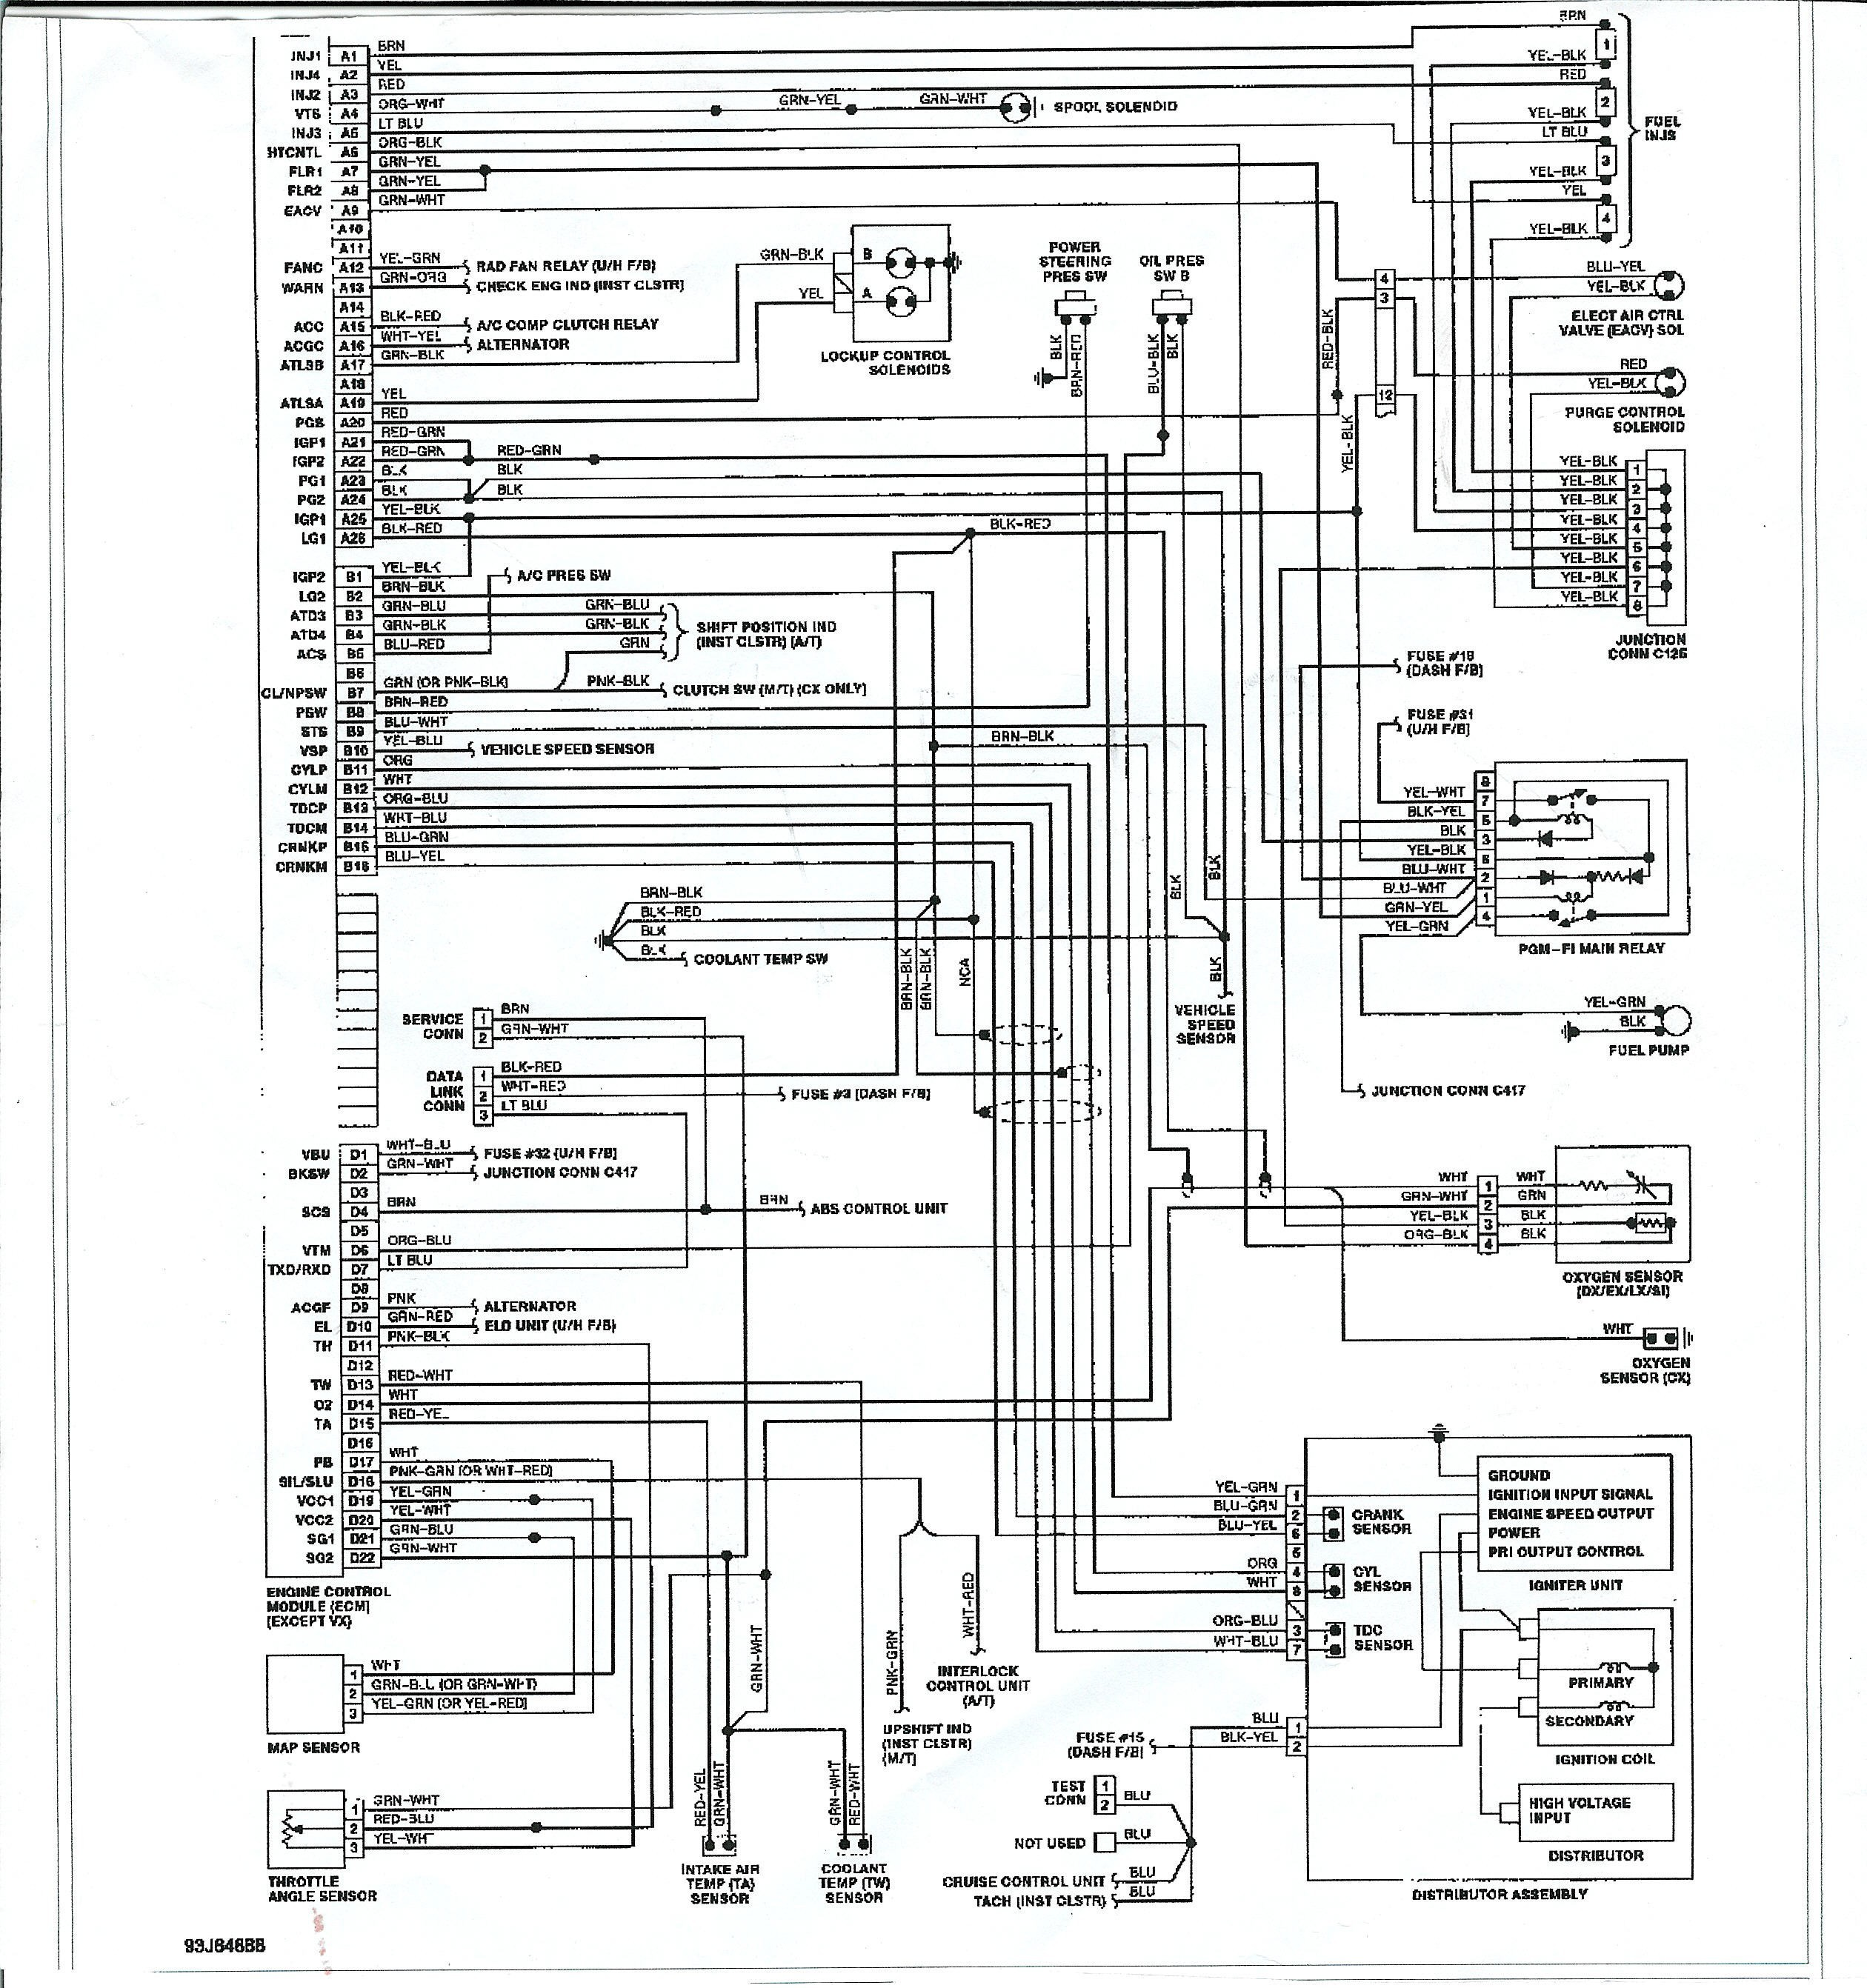 2004 honda accord wiring diagram 1996 honda accord ignition wiring diagram inspirational ac wiring of 2004 honda accord wiring diagram 2004 honda accord ac diagram wiring data schema \u2022